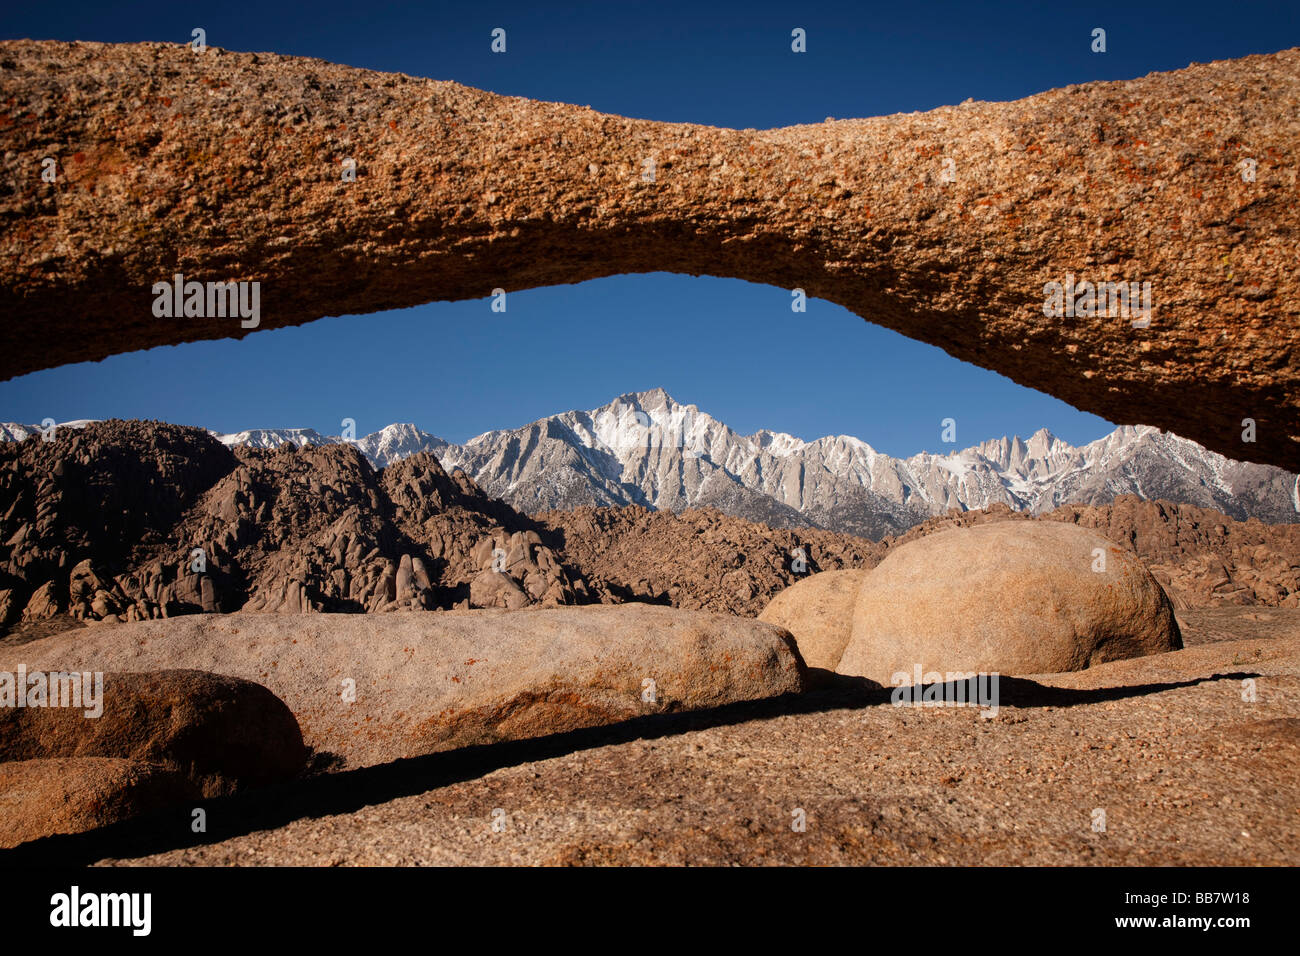 Mount Whitney vu à travers la roche naturelle arch près de Lone Pine en Californie USA Photo Stock